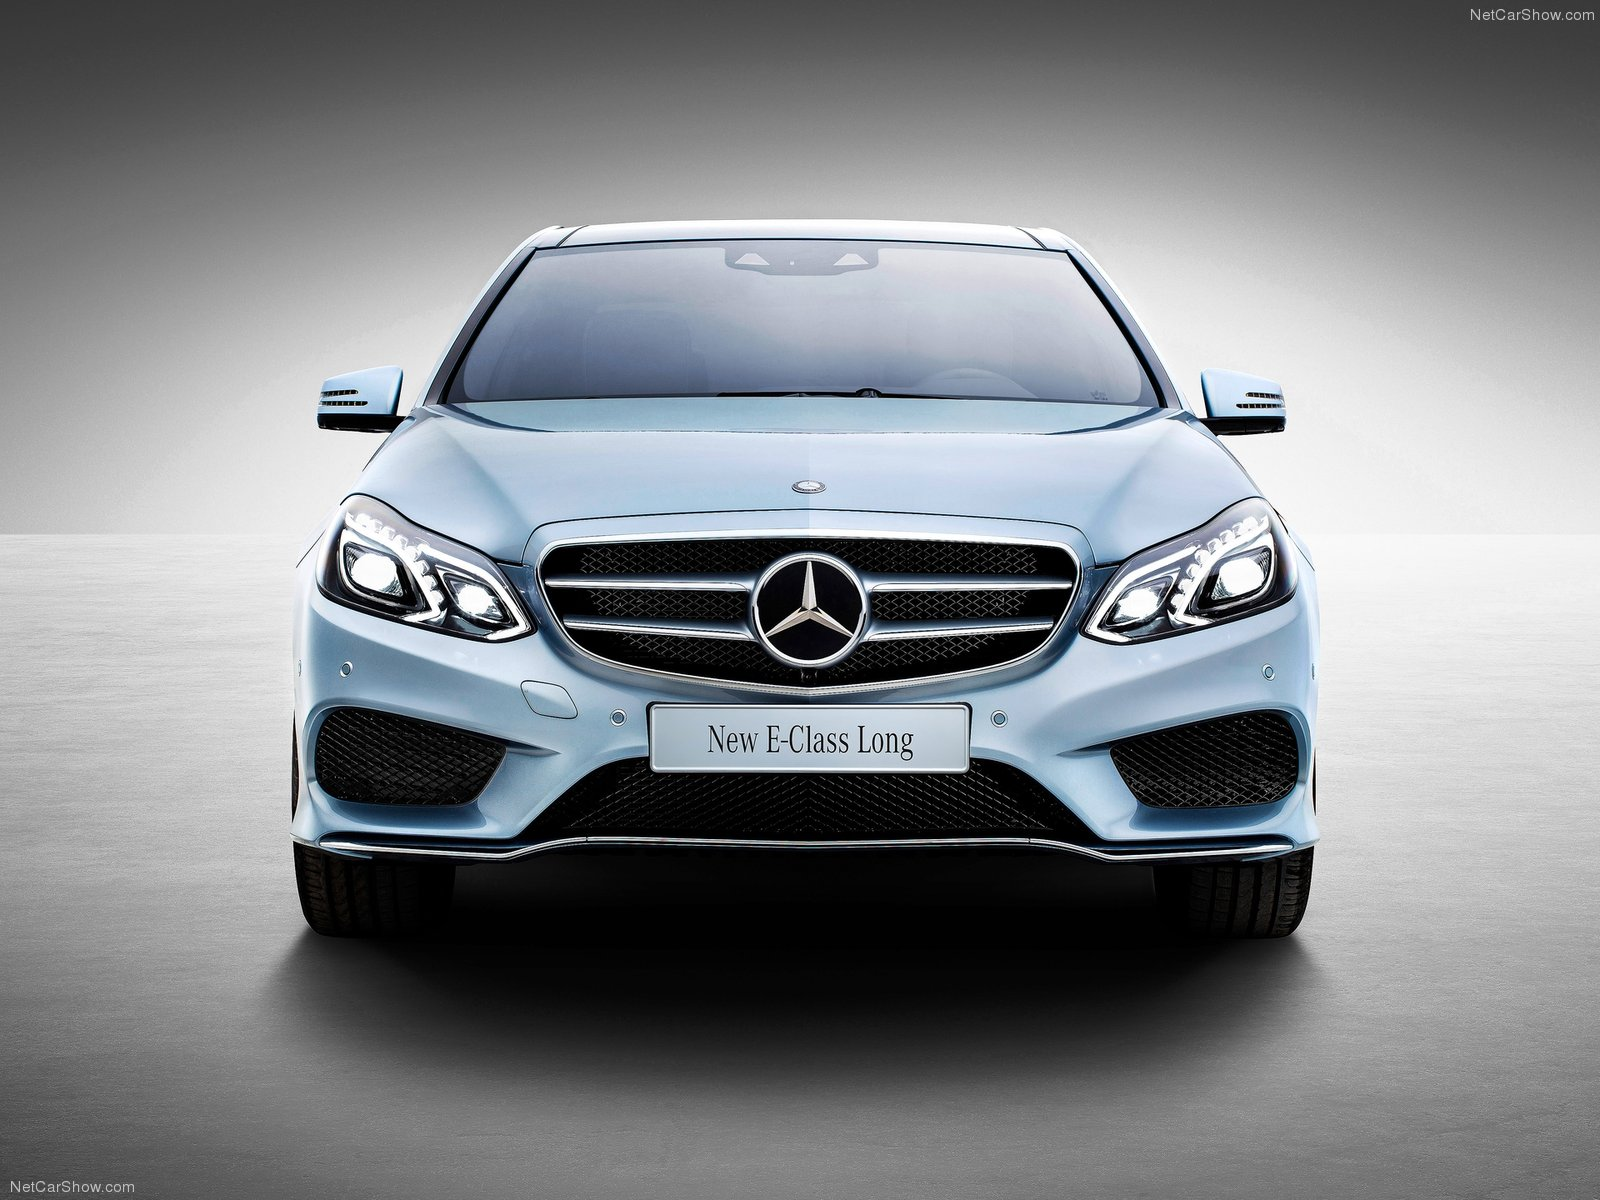 2014 mercedes benz e class l review spec release date for 2014 mercedes benz a class